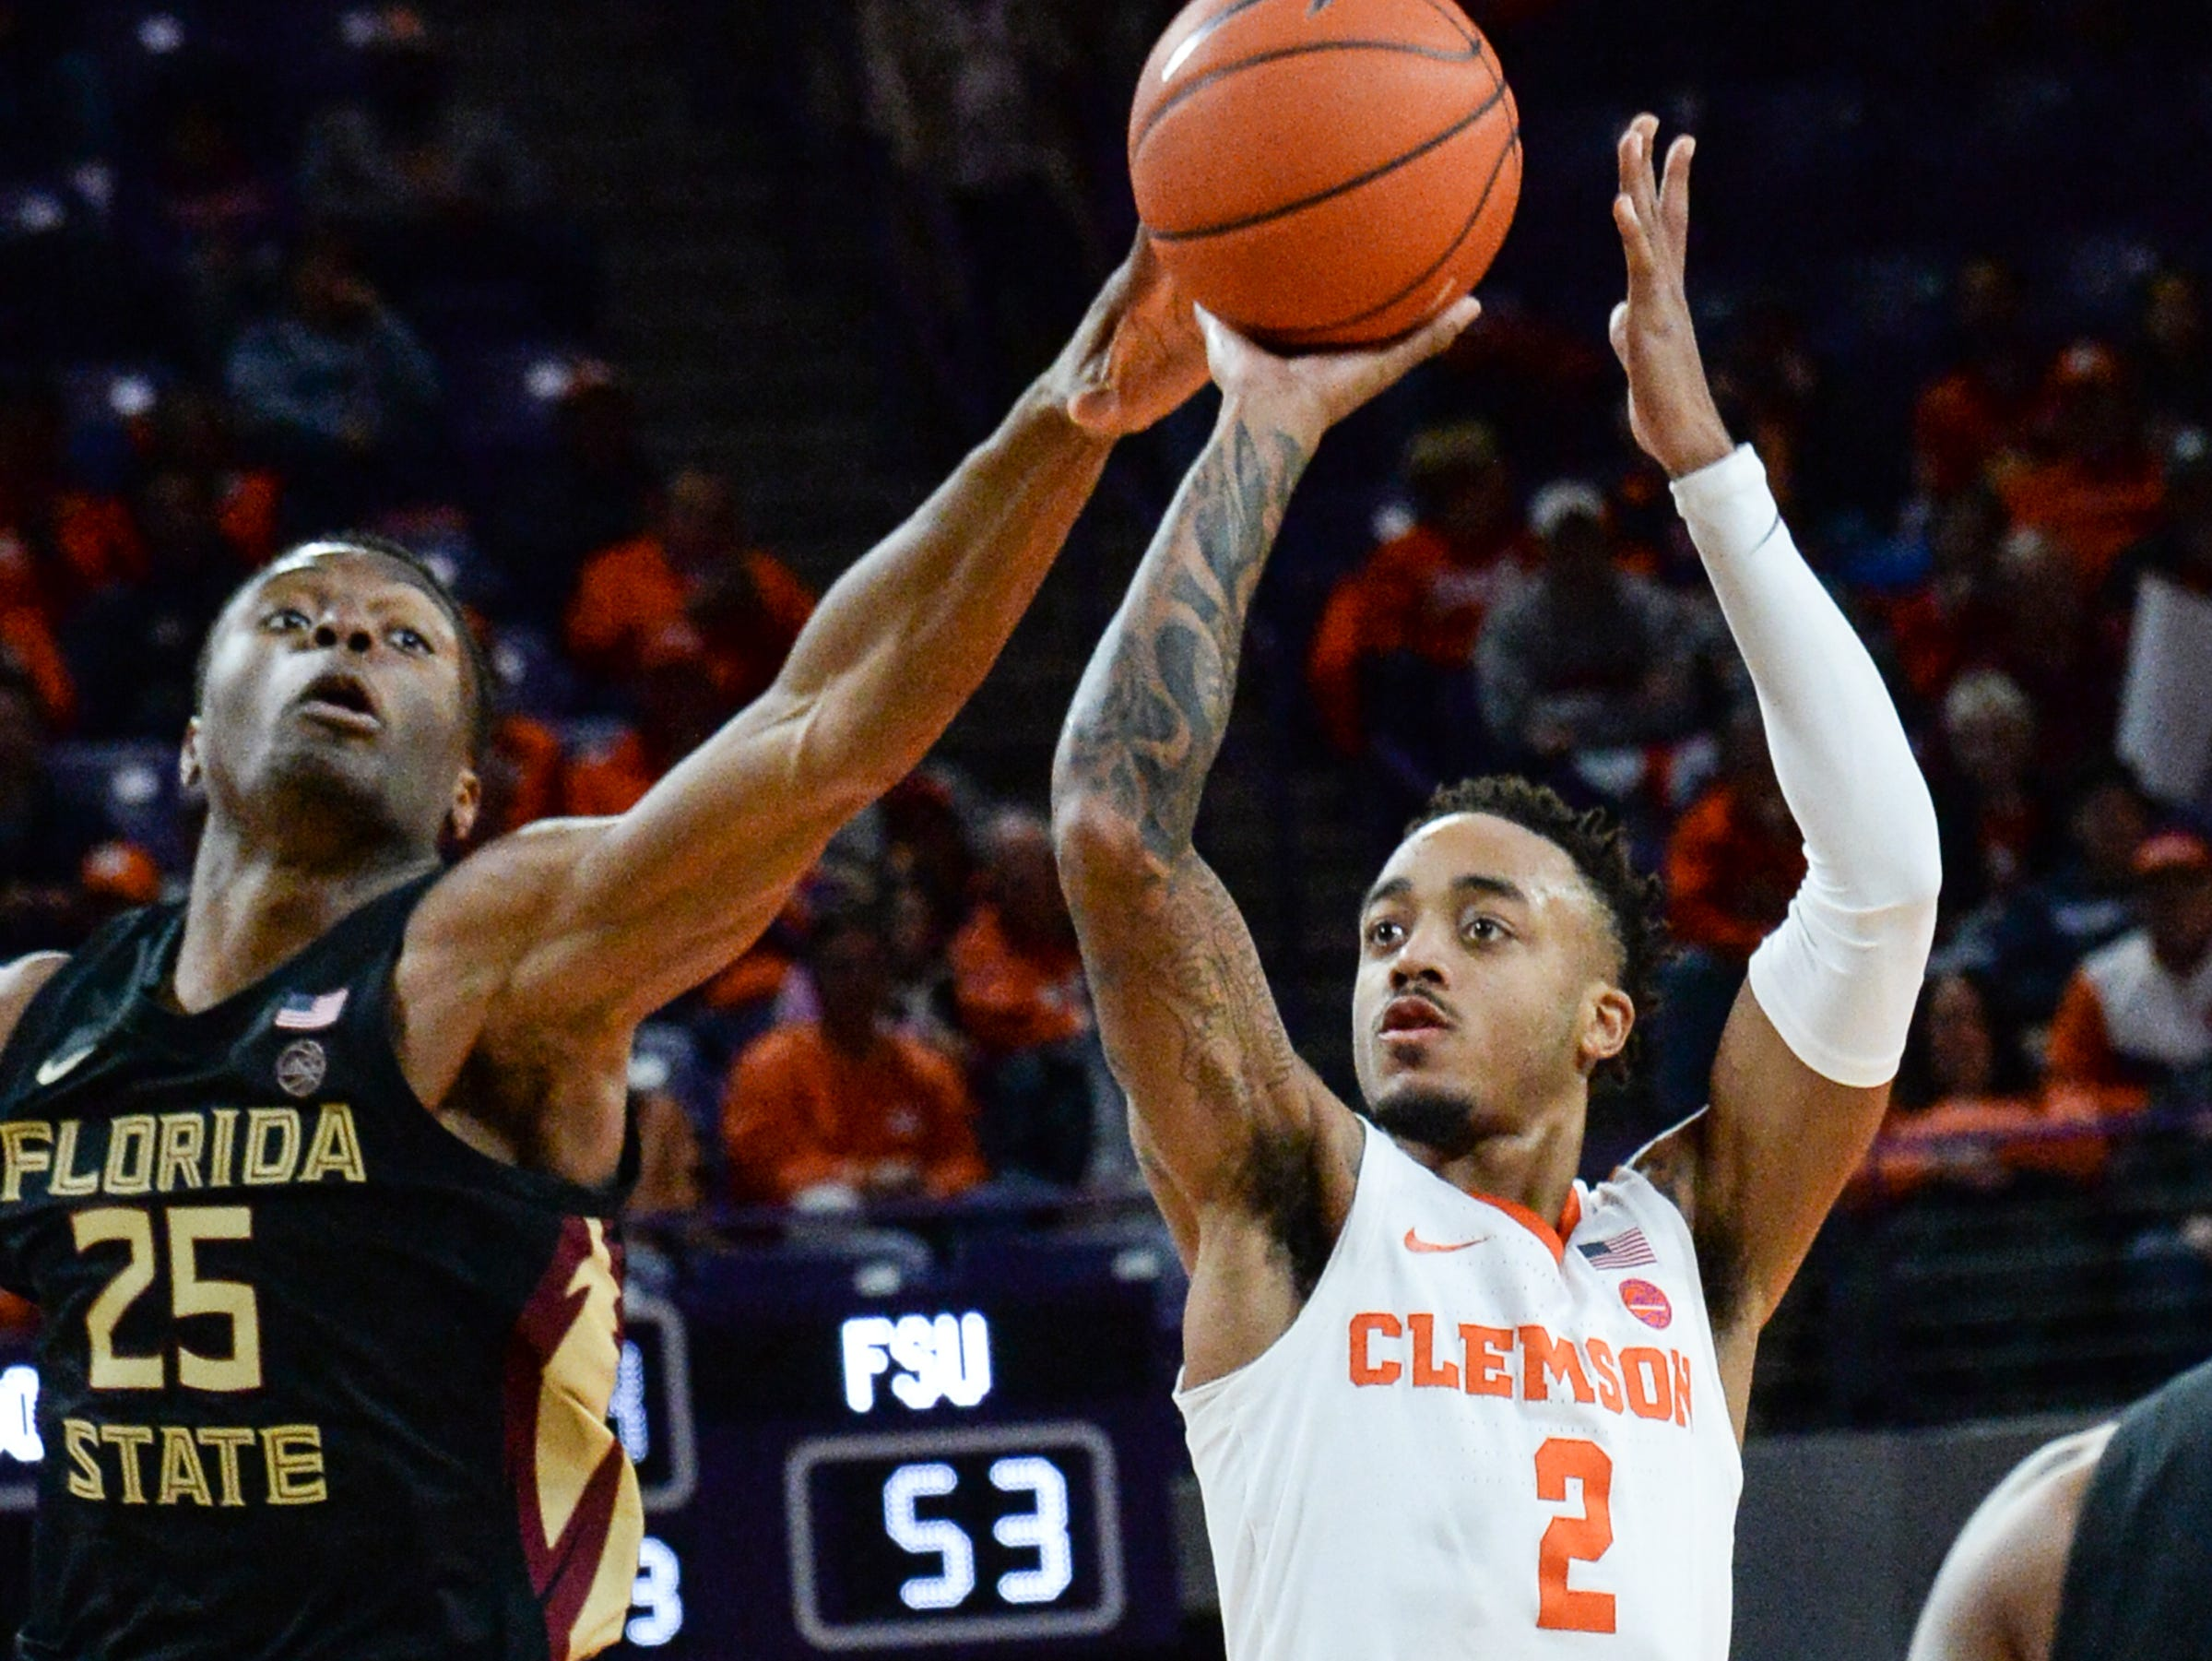 Clemson guard Marcquise Reed (2) shoots near Clemson forward Aamir Simms (25) during the second half at Littlejohn Coliseum in Clemson Tuesday, February 19, 2019.